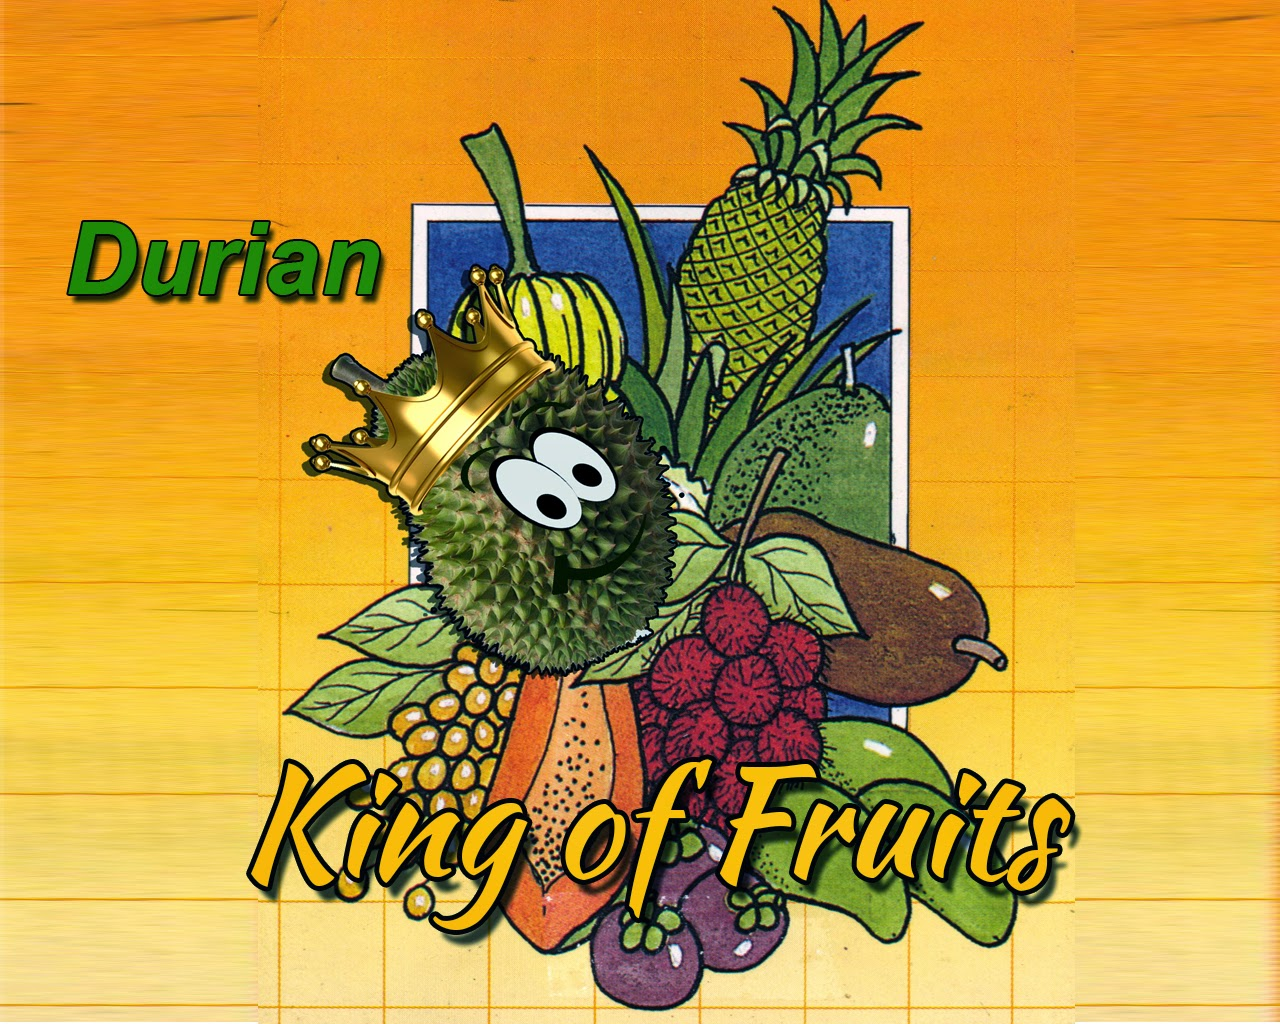 durian+king+of+fruits.jpg